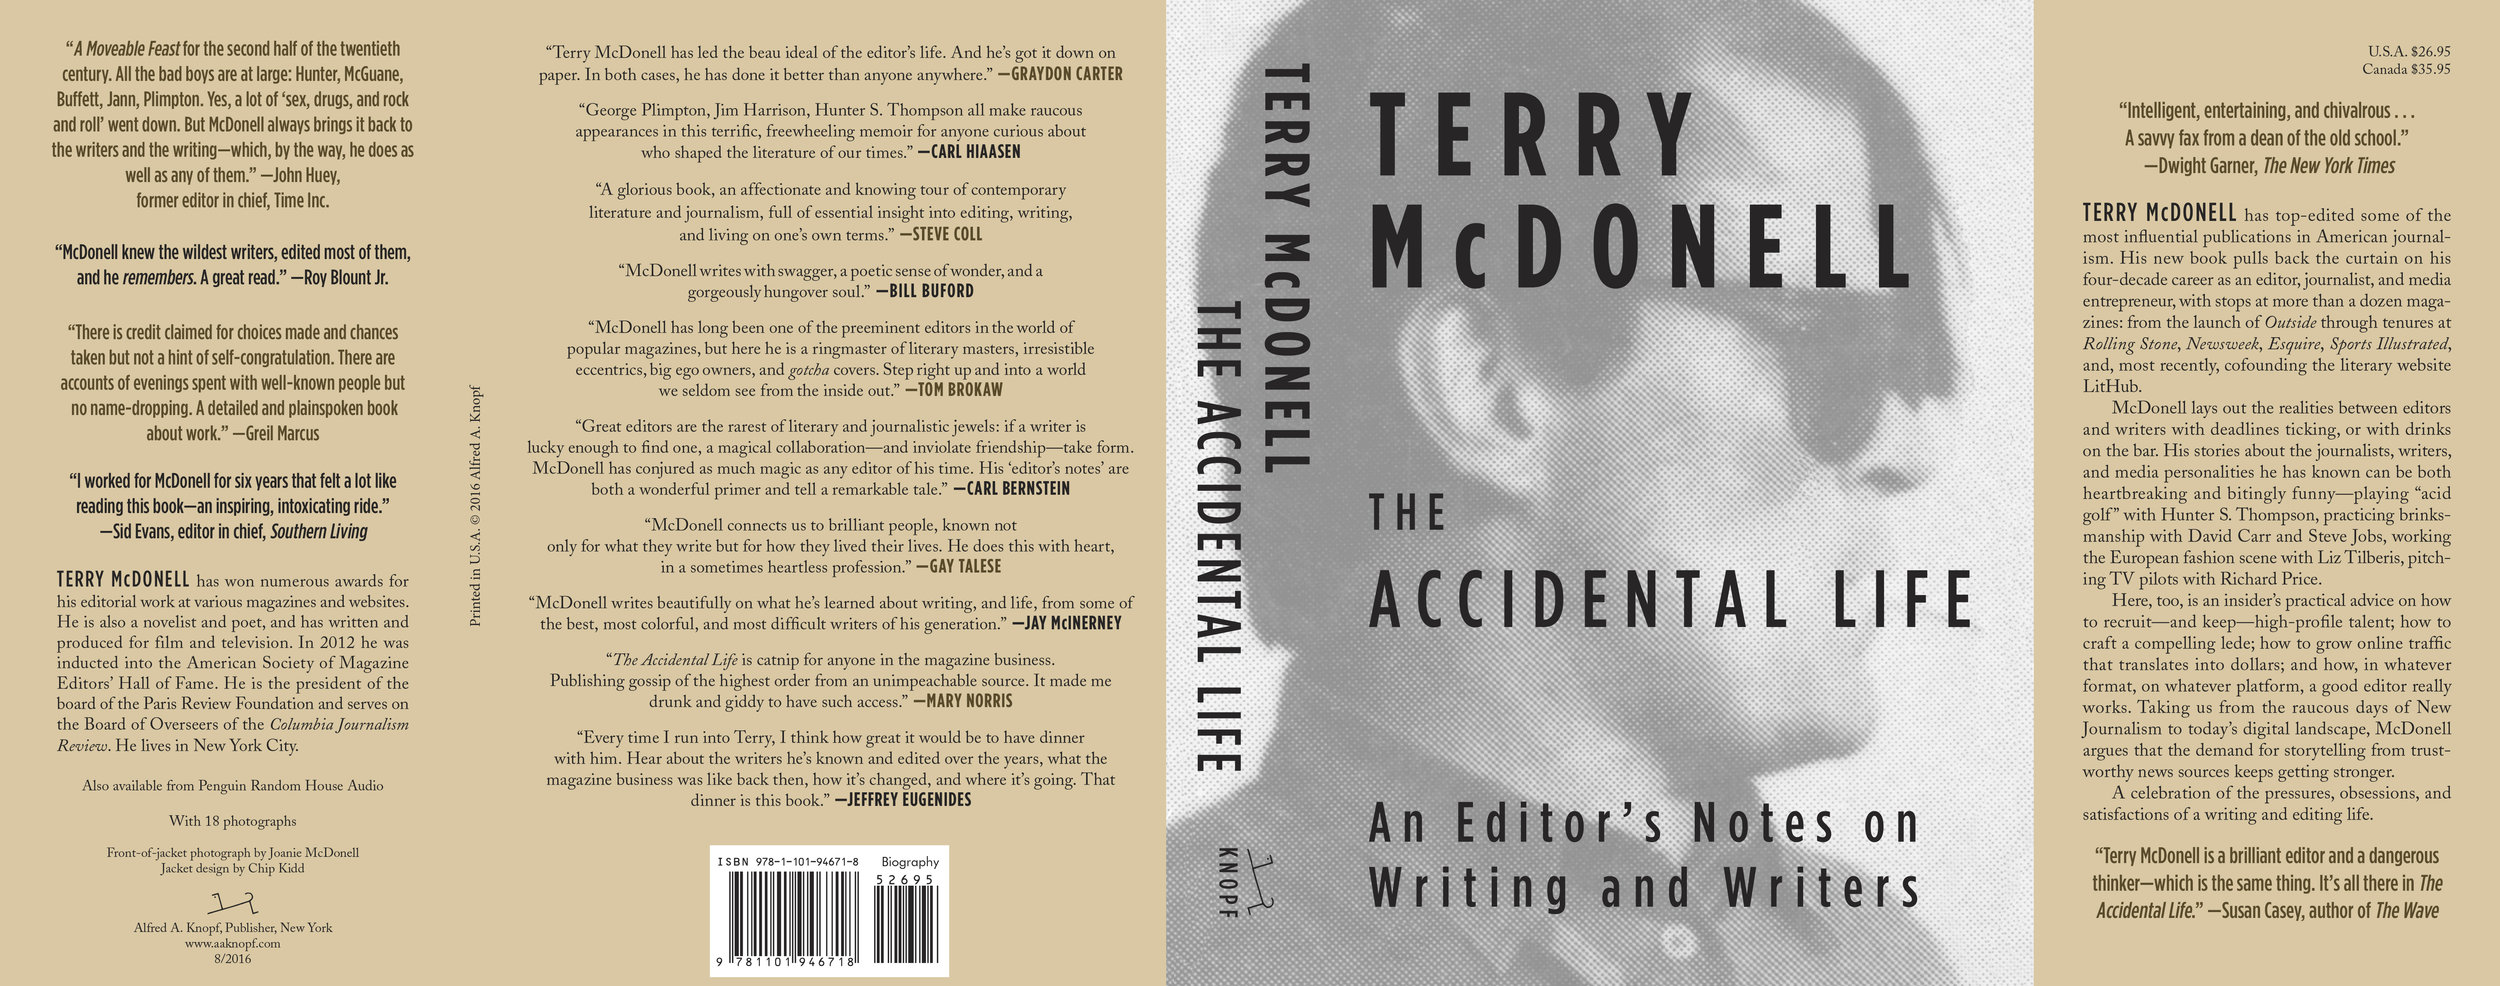 Reviews — TERRY McDONELL